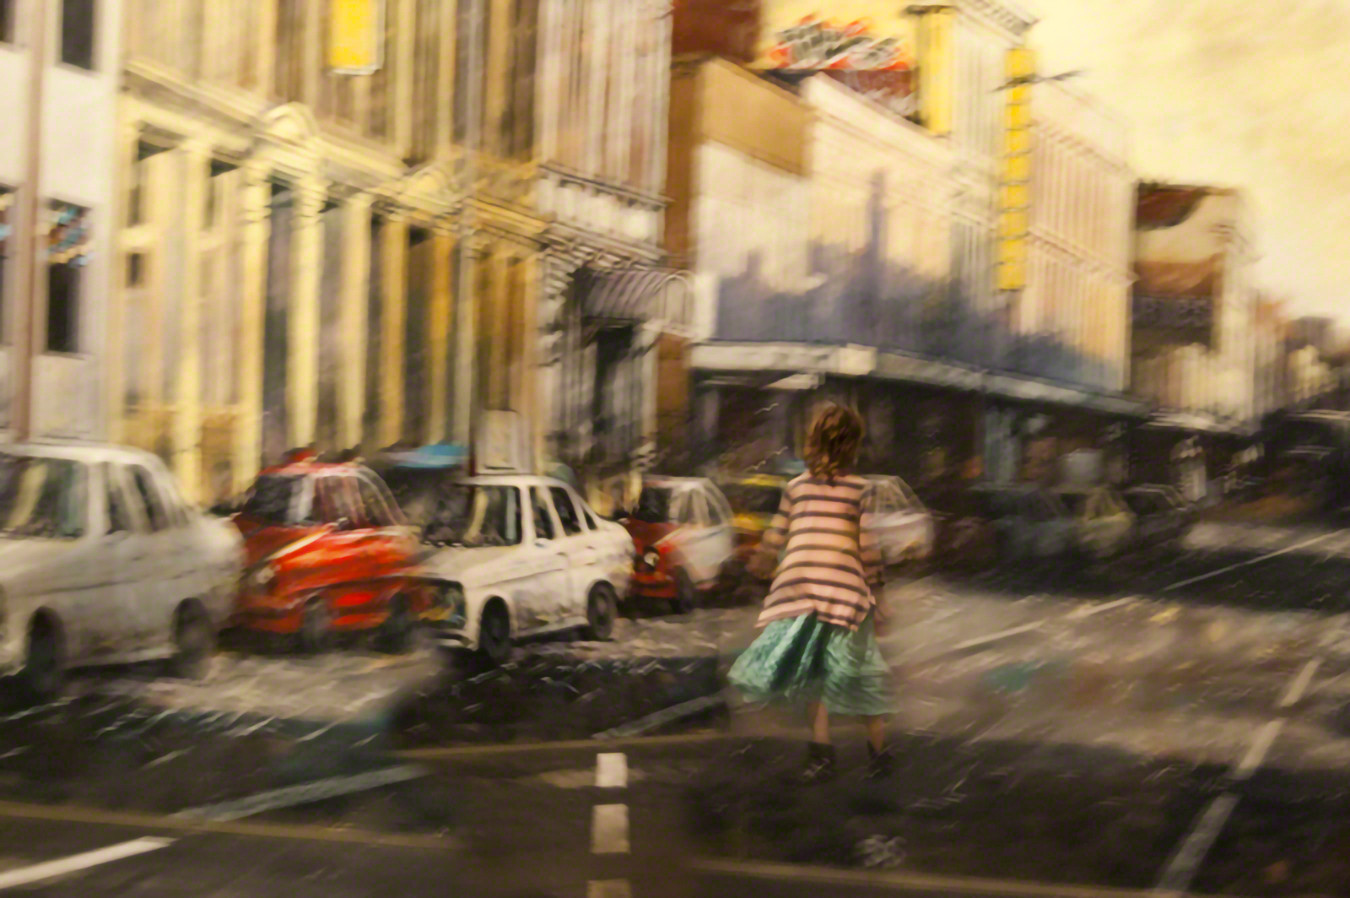 Girl in Street, New Zealand